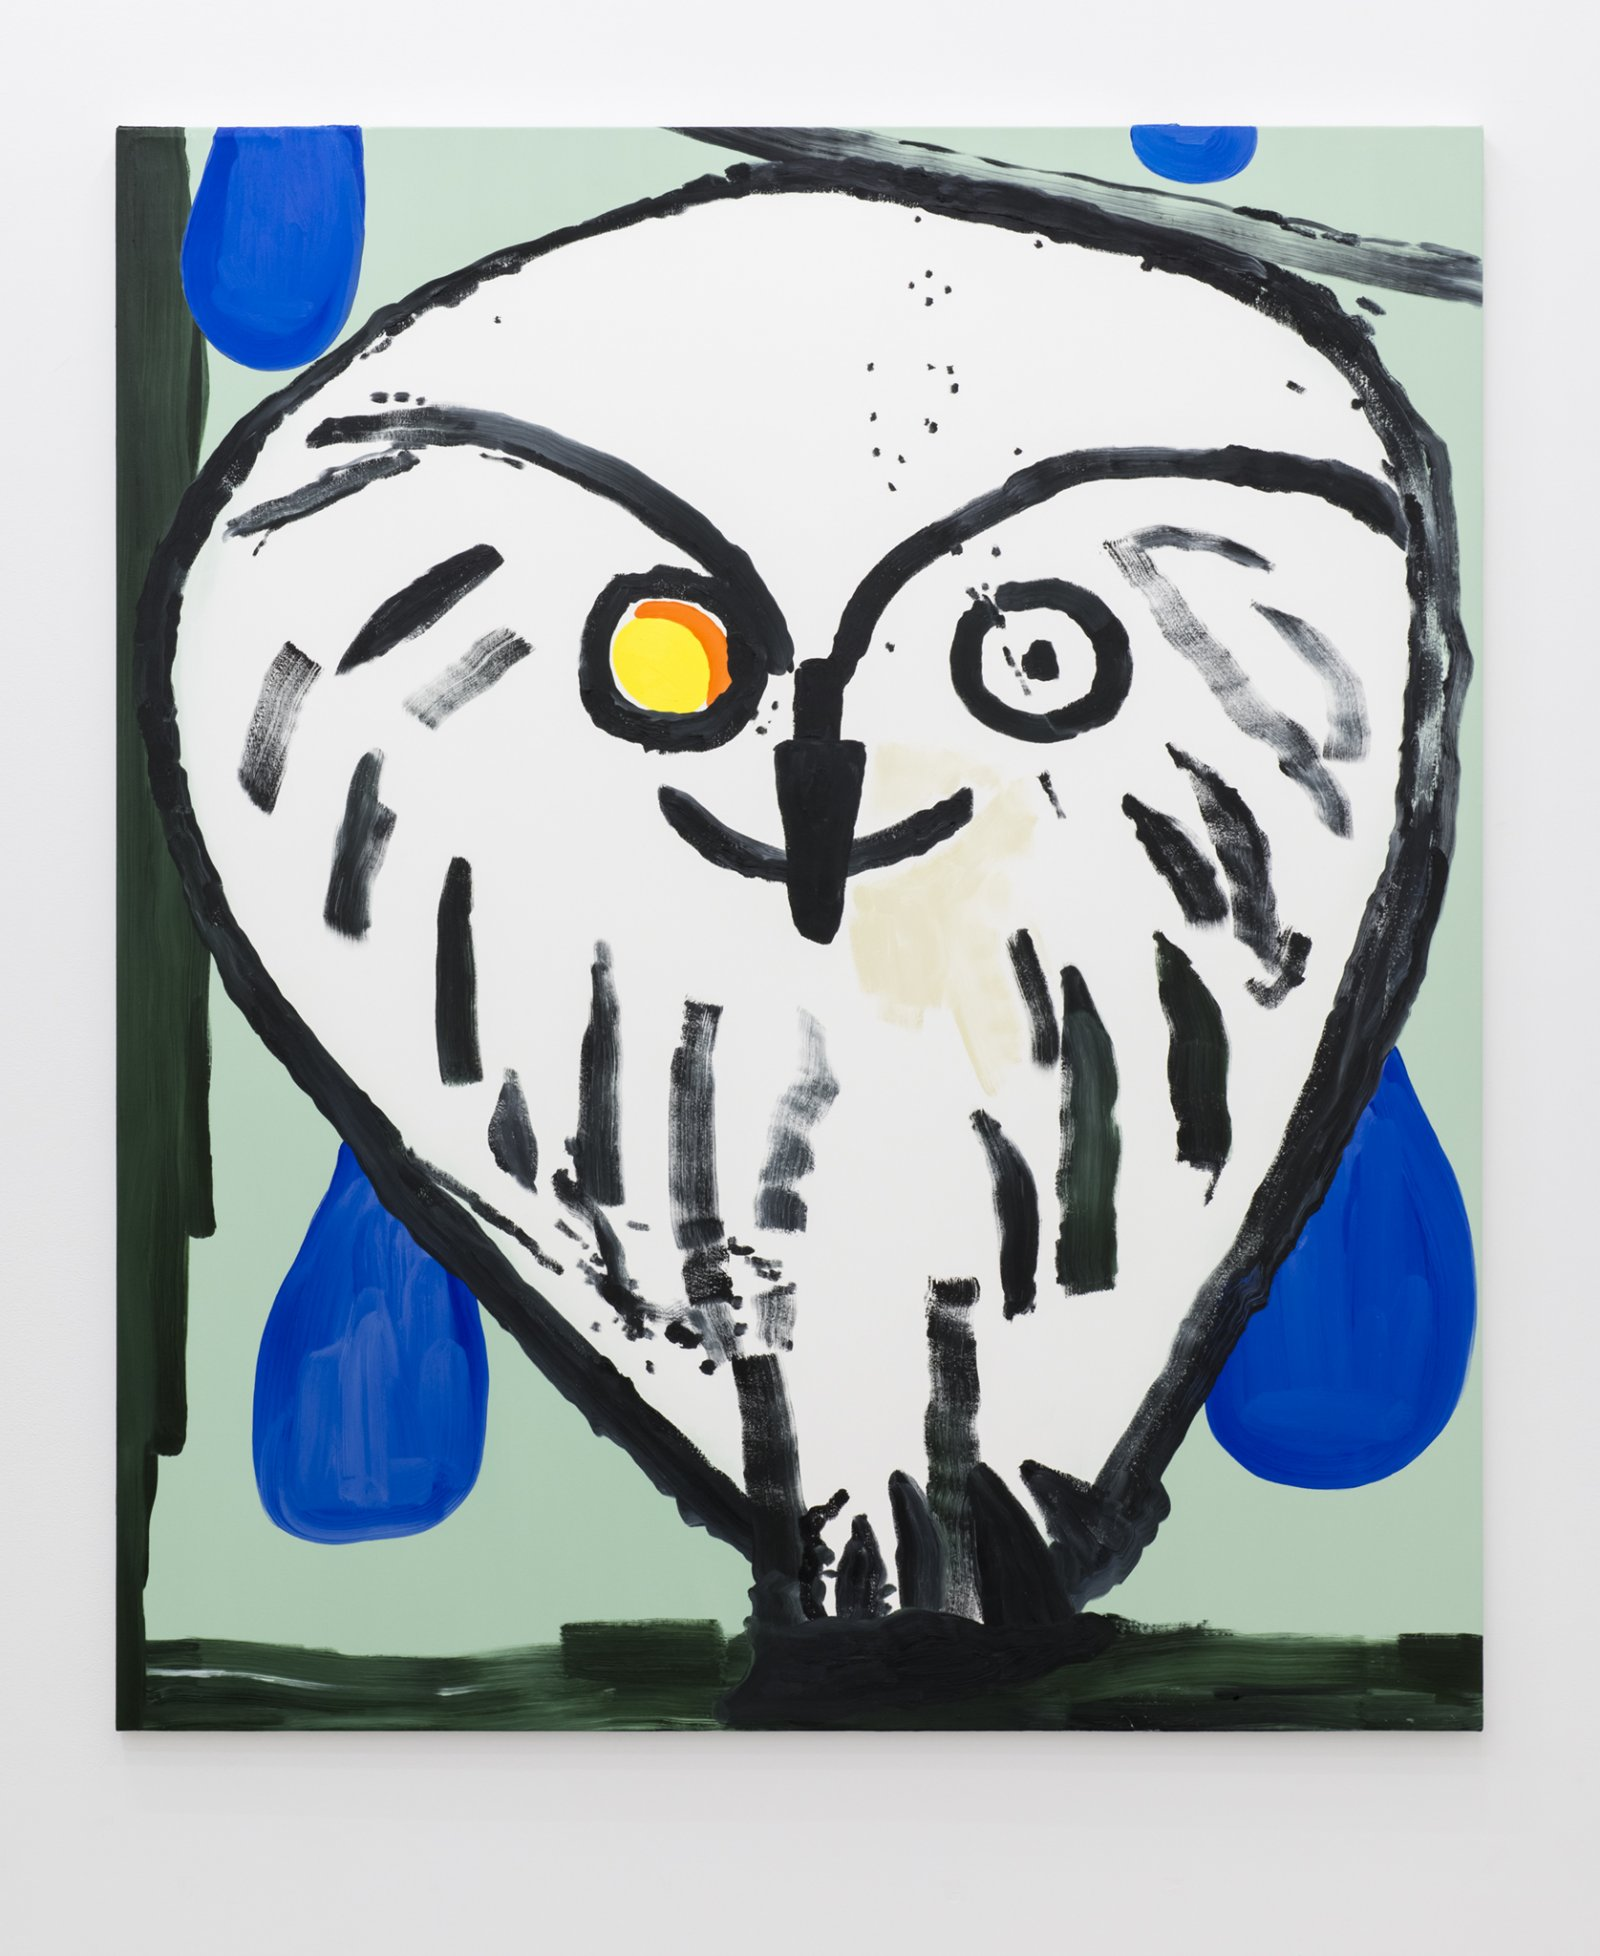 ​Elizabeth McIntosh, Owl Eye, 2017, oil on canvas, 74 x 63 in. (188 x 160 cm) by Elizabeth McIntosh